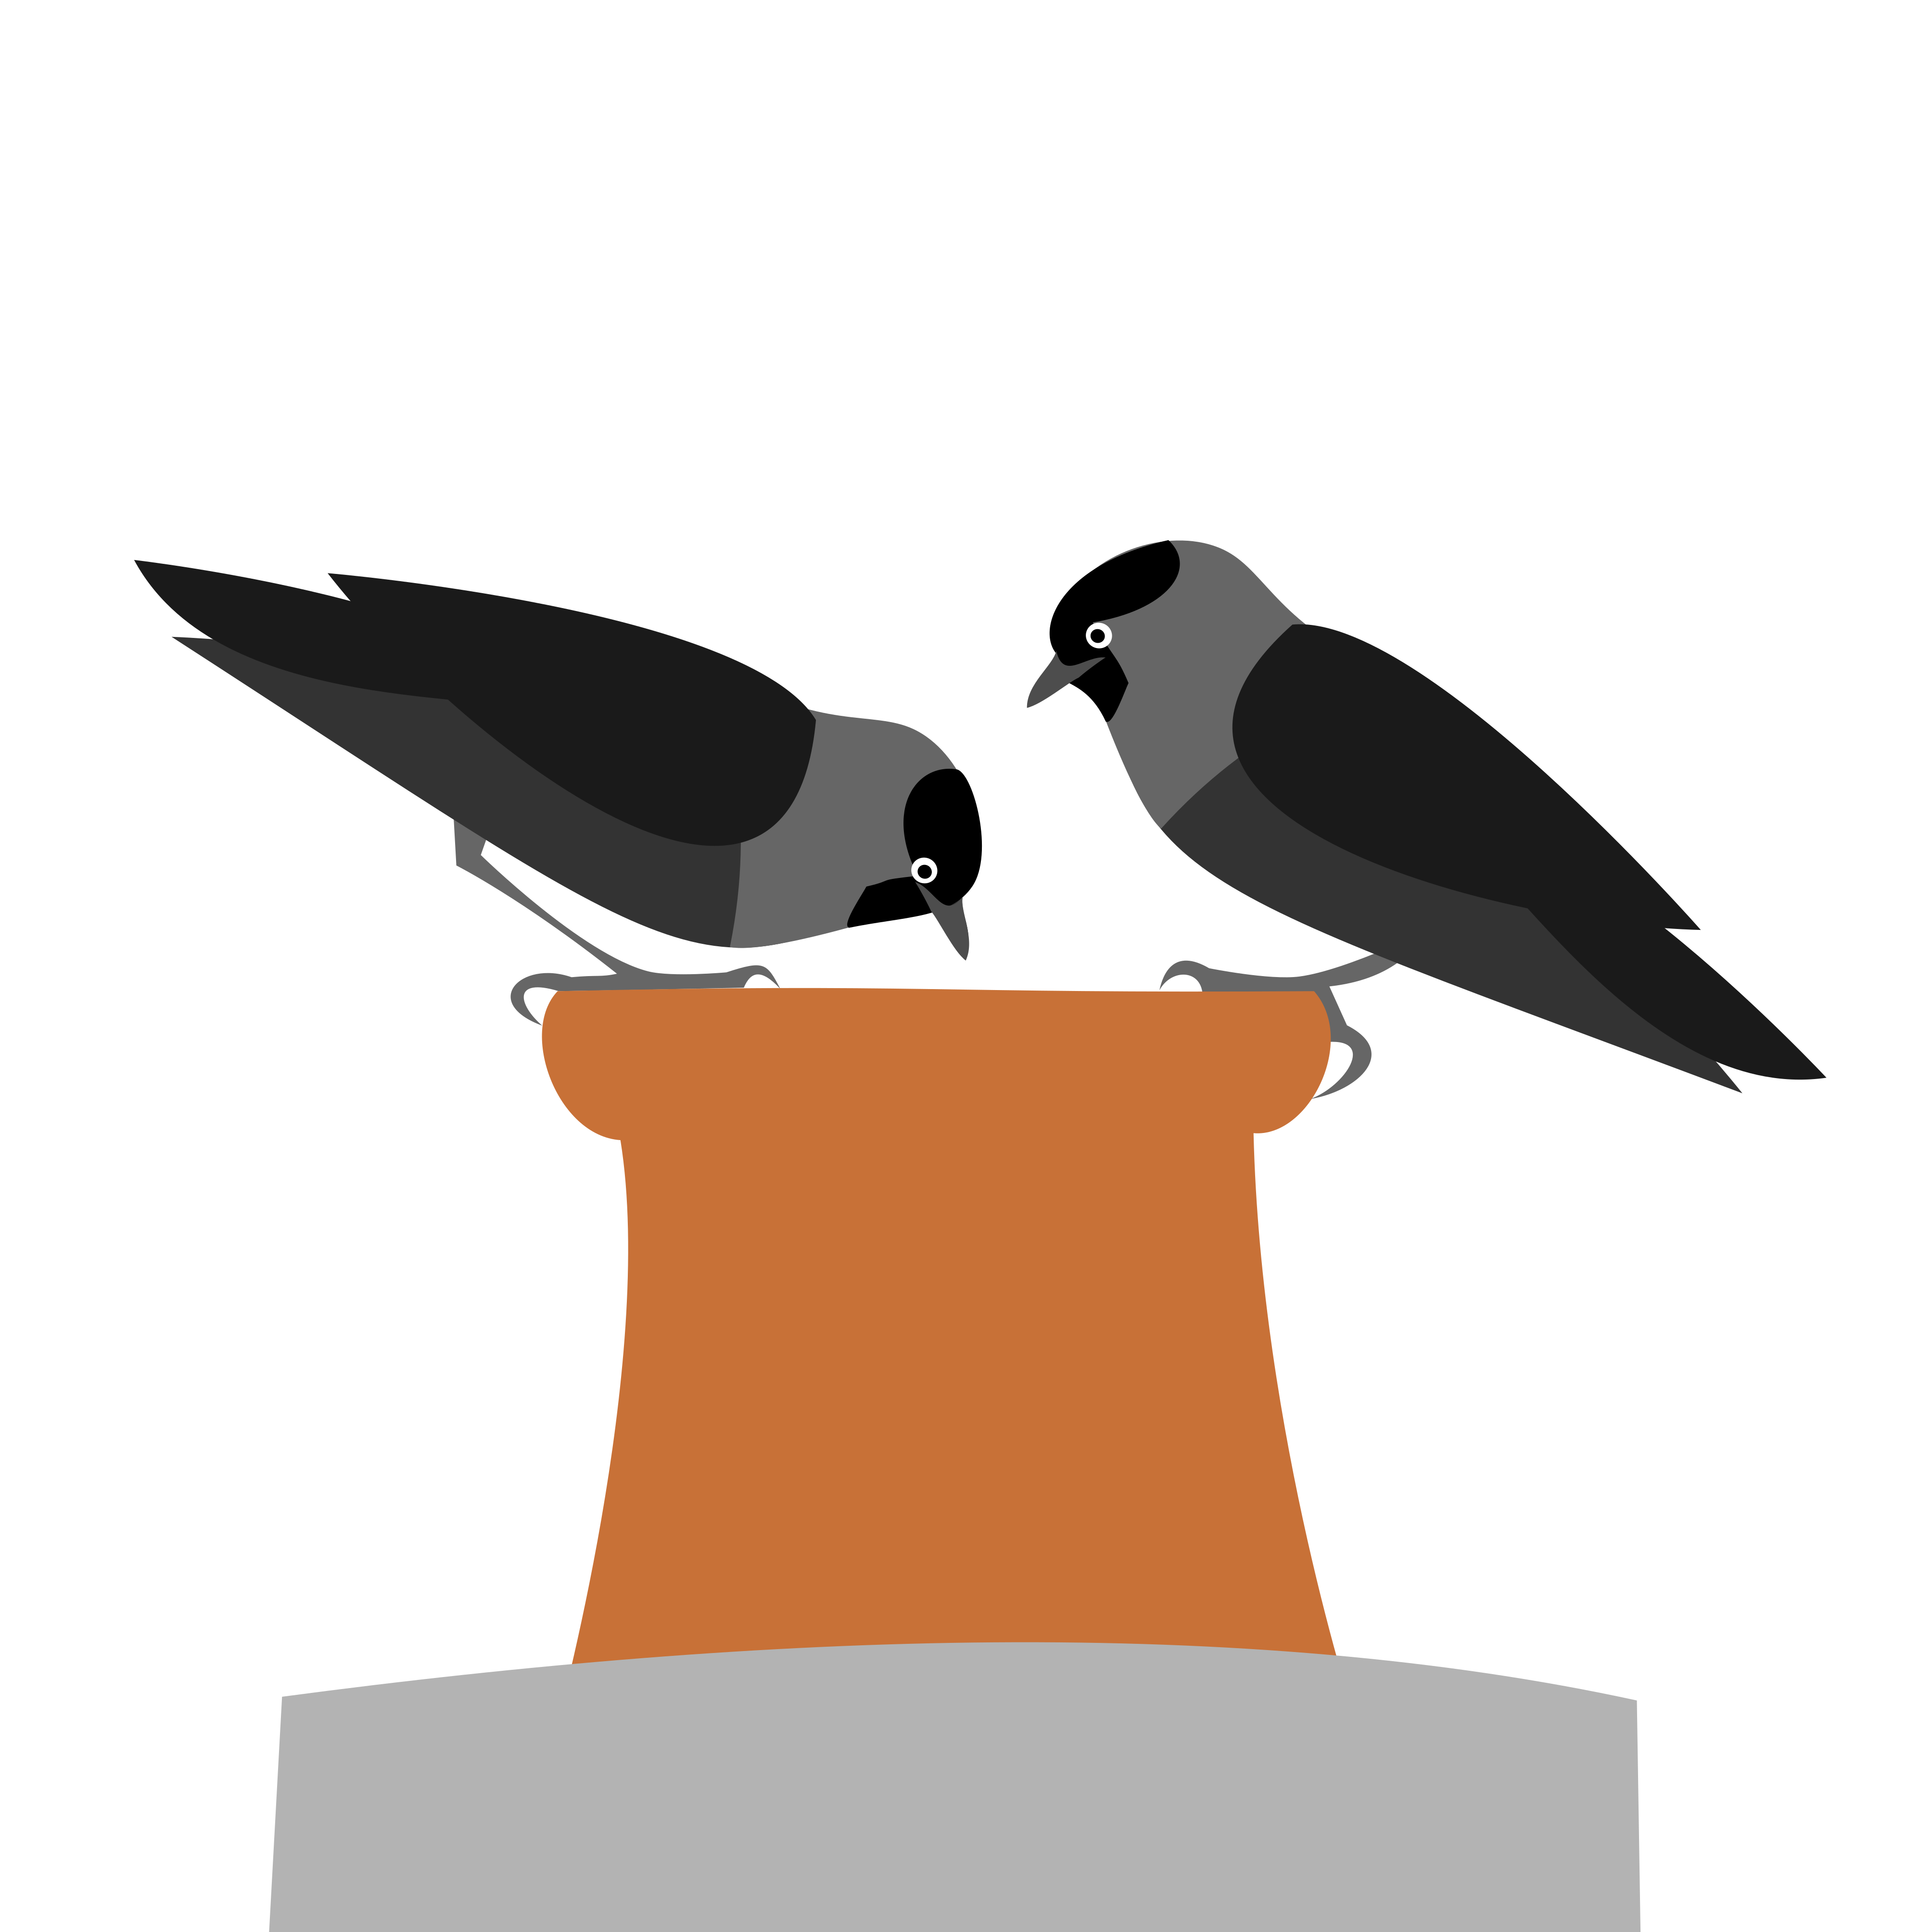 two jackdaws looking down a chimney. Simply drawn with flat bold colours on a white background